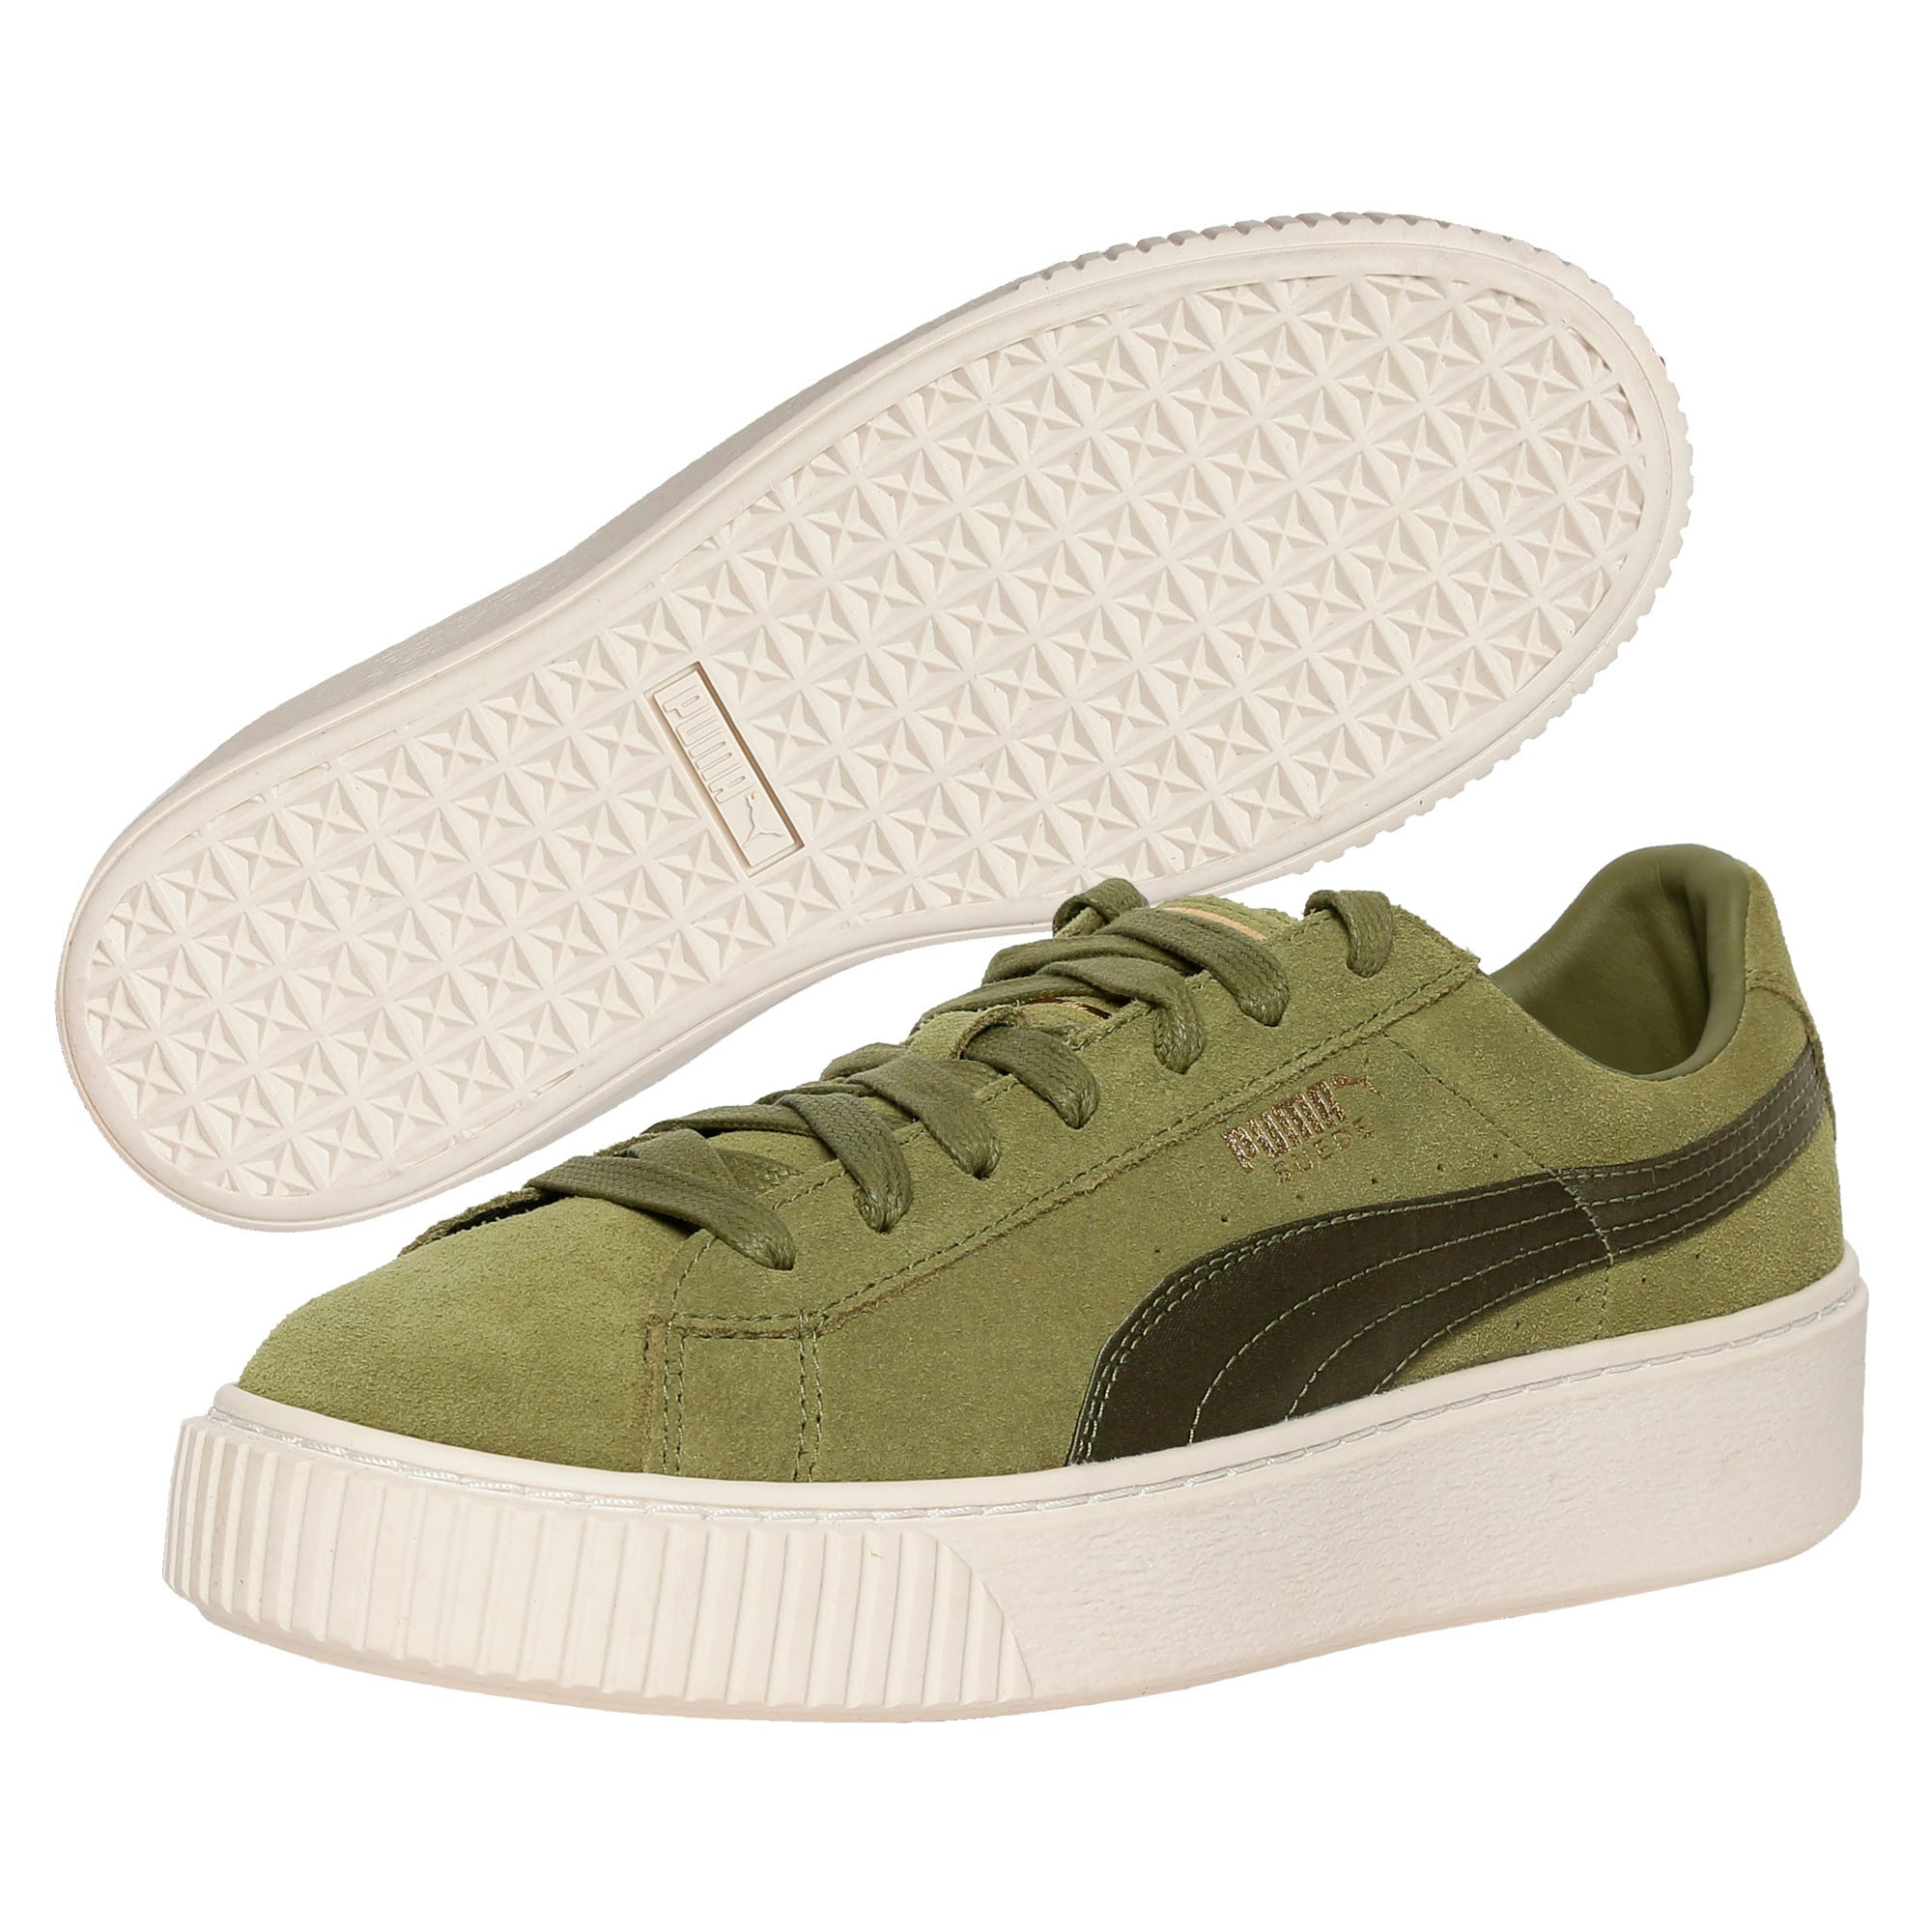 Thumbnail 2 of Suede Platform Satin Women's Trainers, Olive Branch-Whisper- Gold, medium-IND